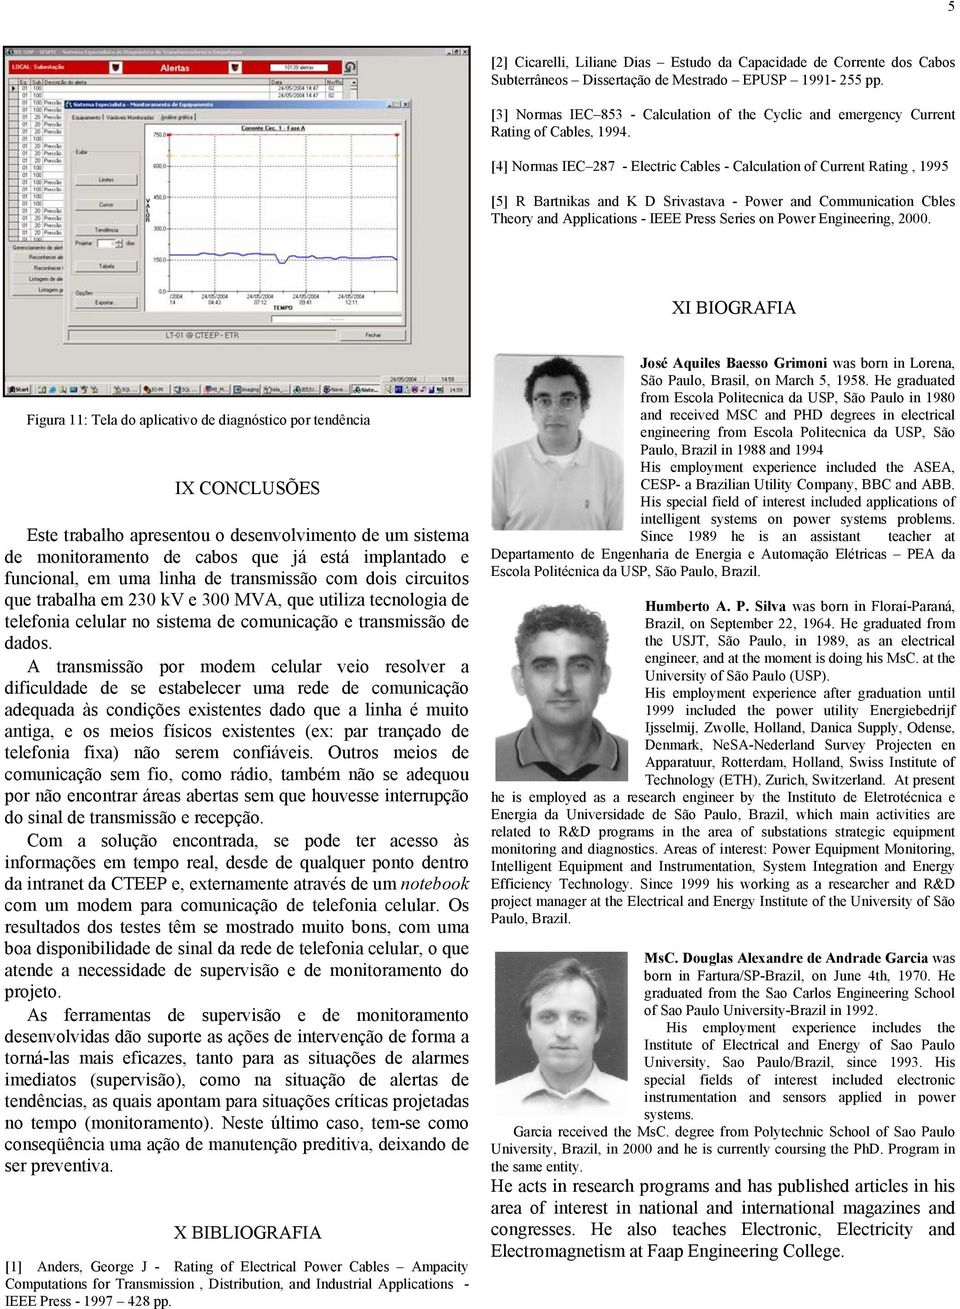 [4] Normas IEC 287 - Electric Cables - Calculation of Current Rating, 1995 [5] R Bartnikas and K D Srivastava - Power and Communication Cbles Theory and Applications - IEEE Press Series on Power